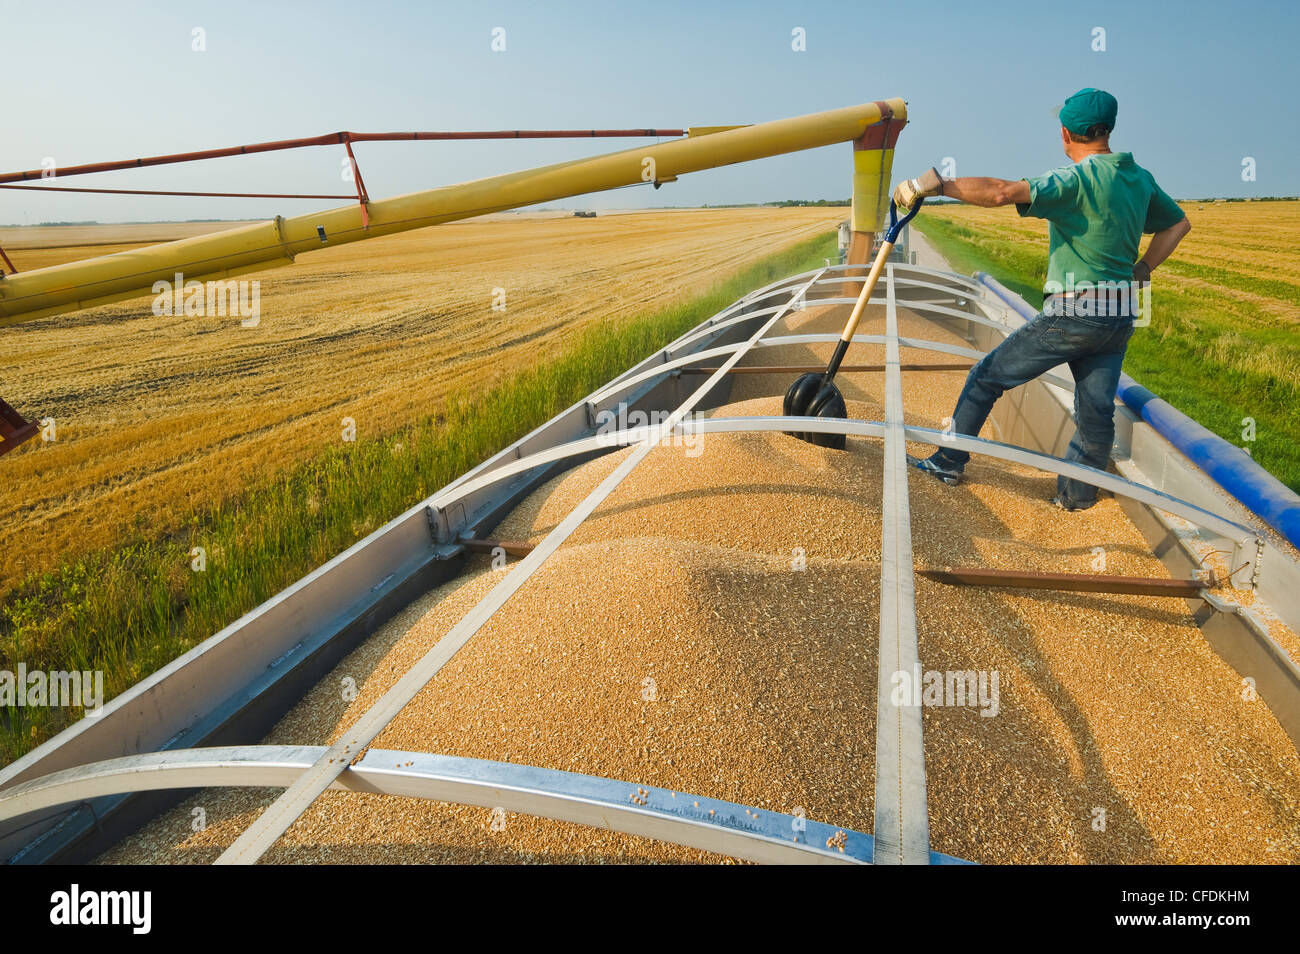 An auger loads wheat into a farm truck during the harvest, near Lorette, Manitoba, Canada - Stock Image